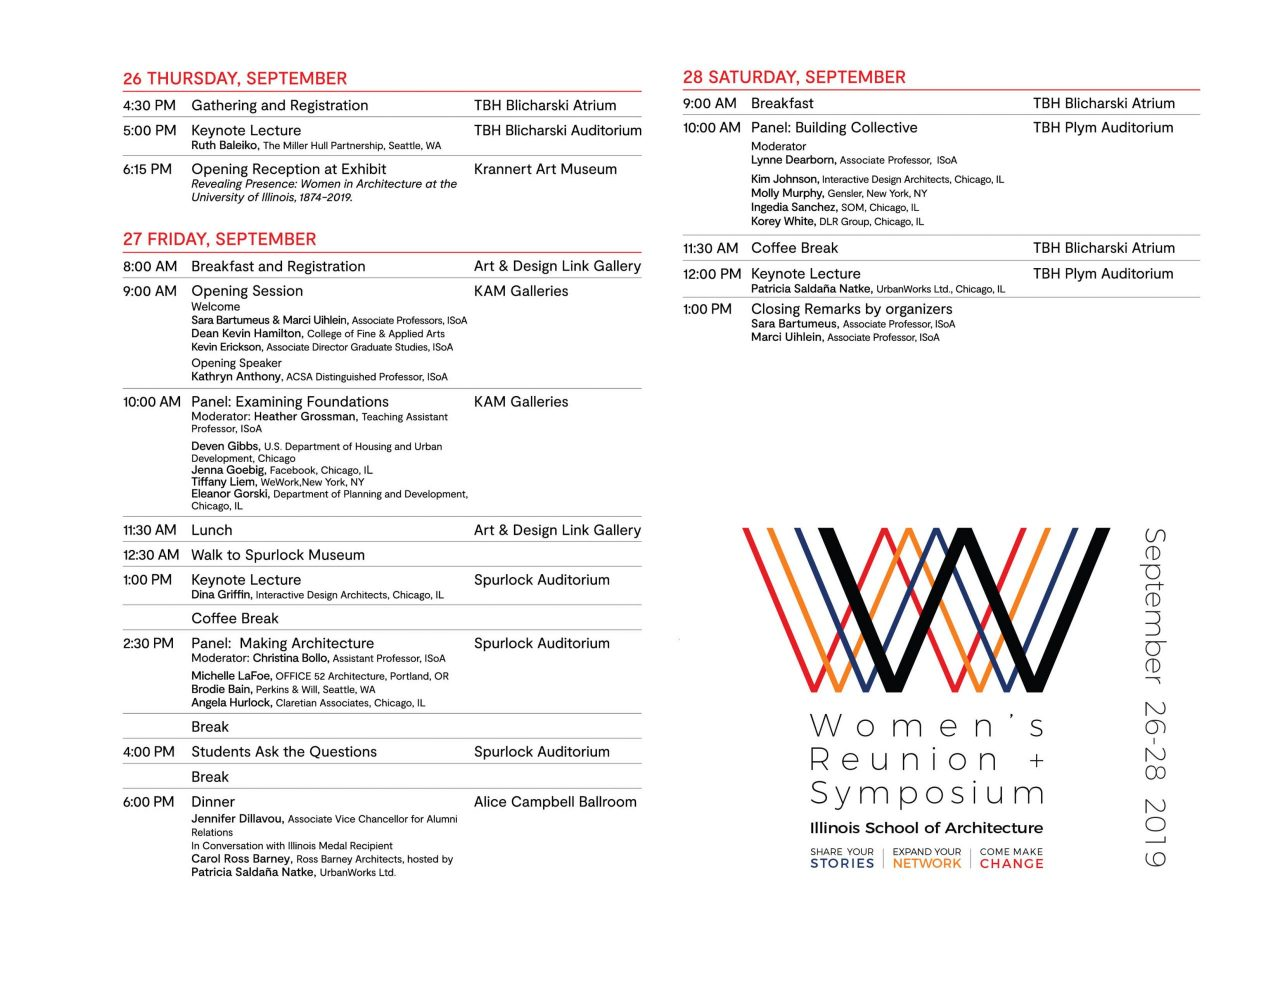 image of the speaker schedule for the symposium